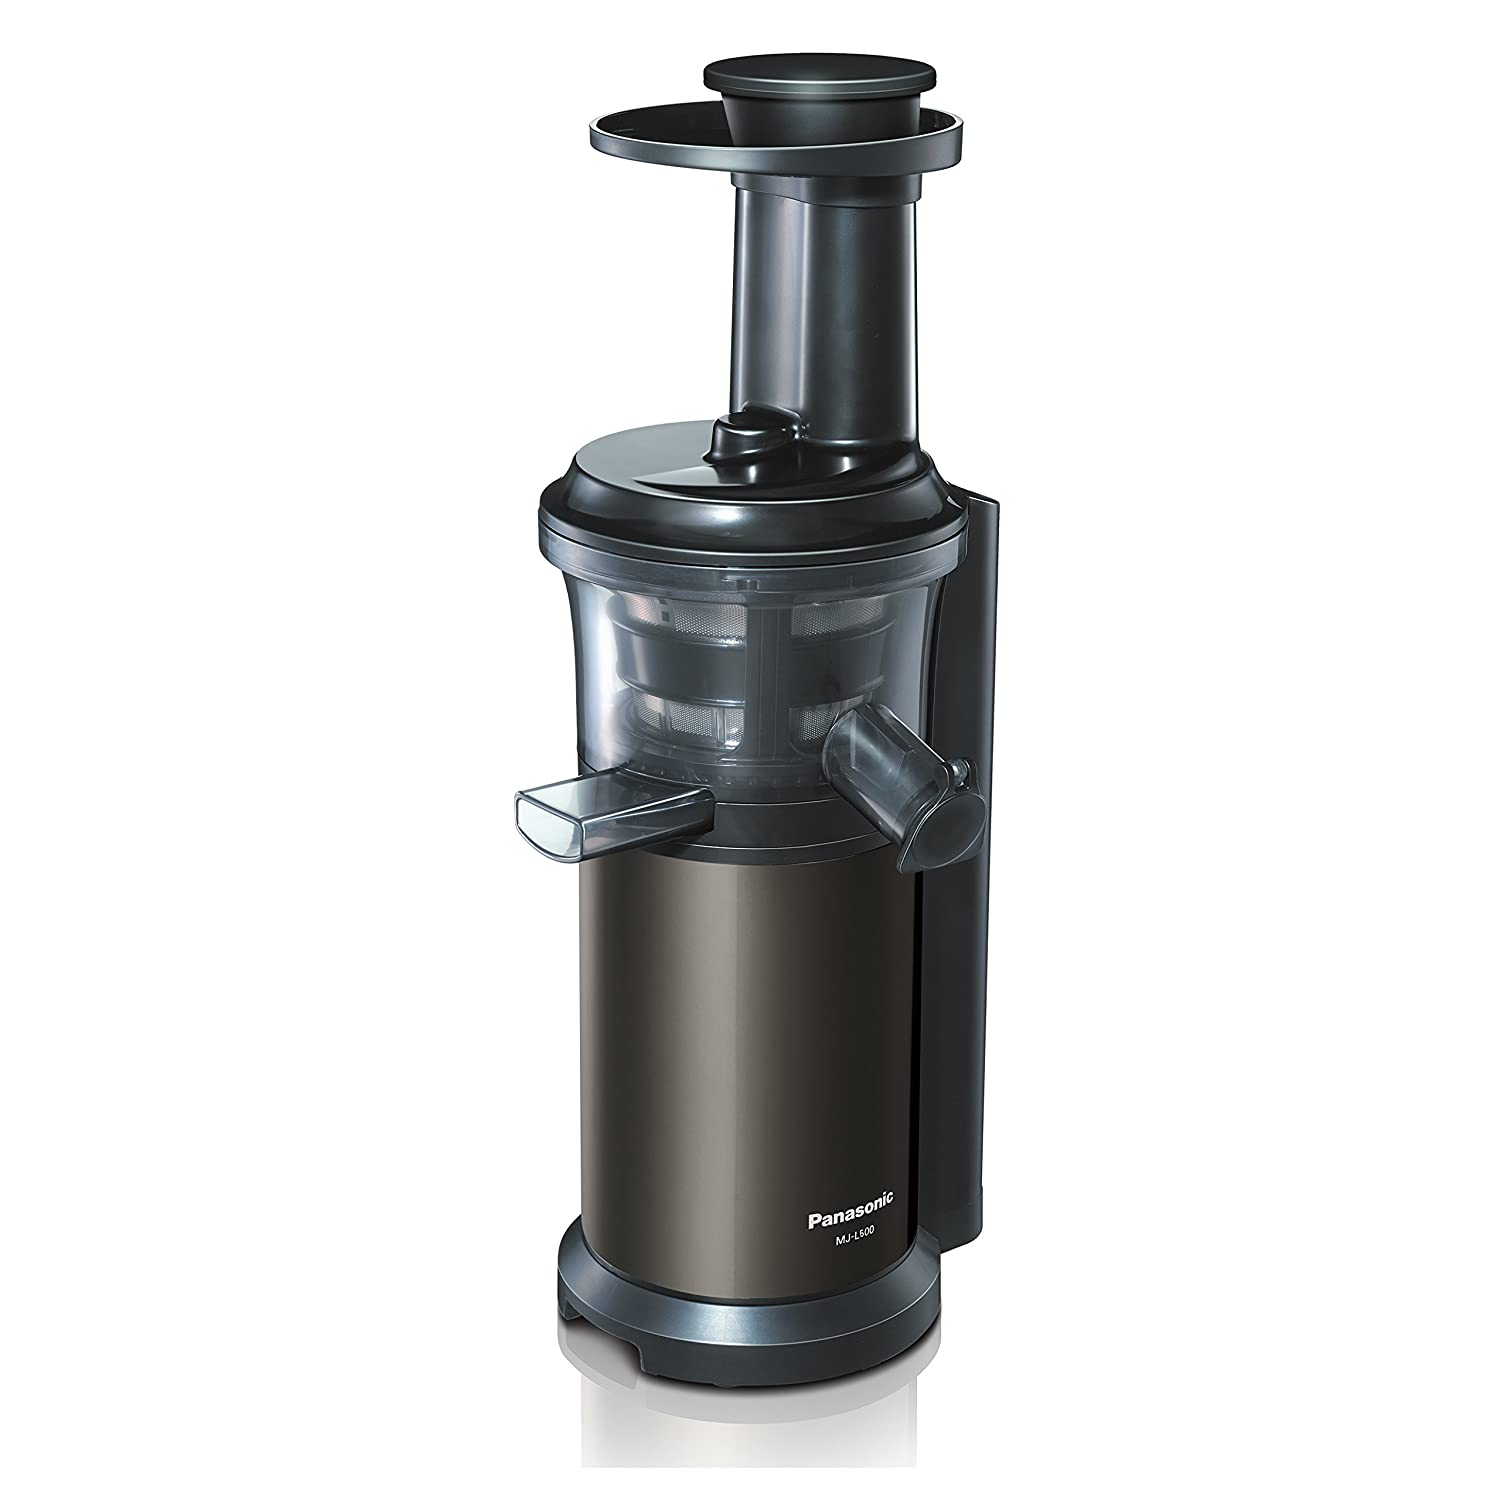 Panasonic MJ-L600SXS Slow Juicer Antracite PANL